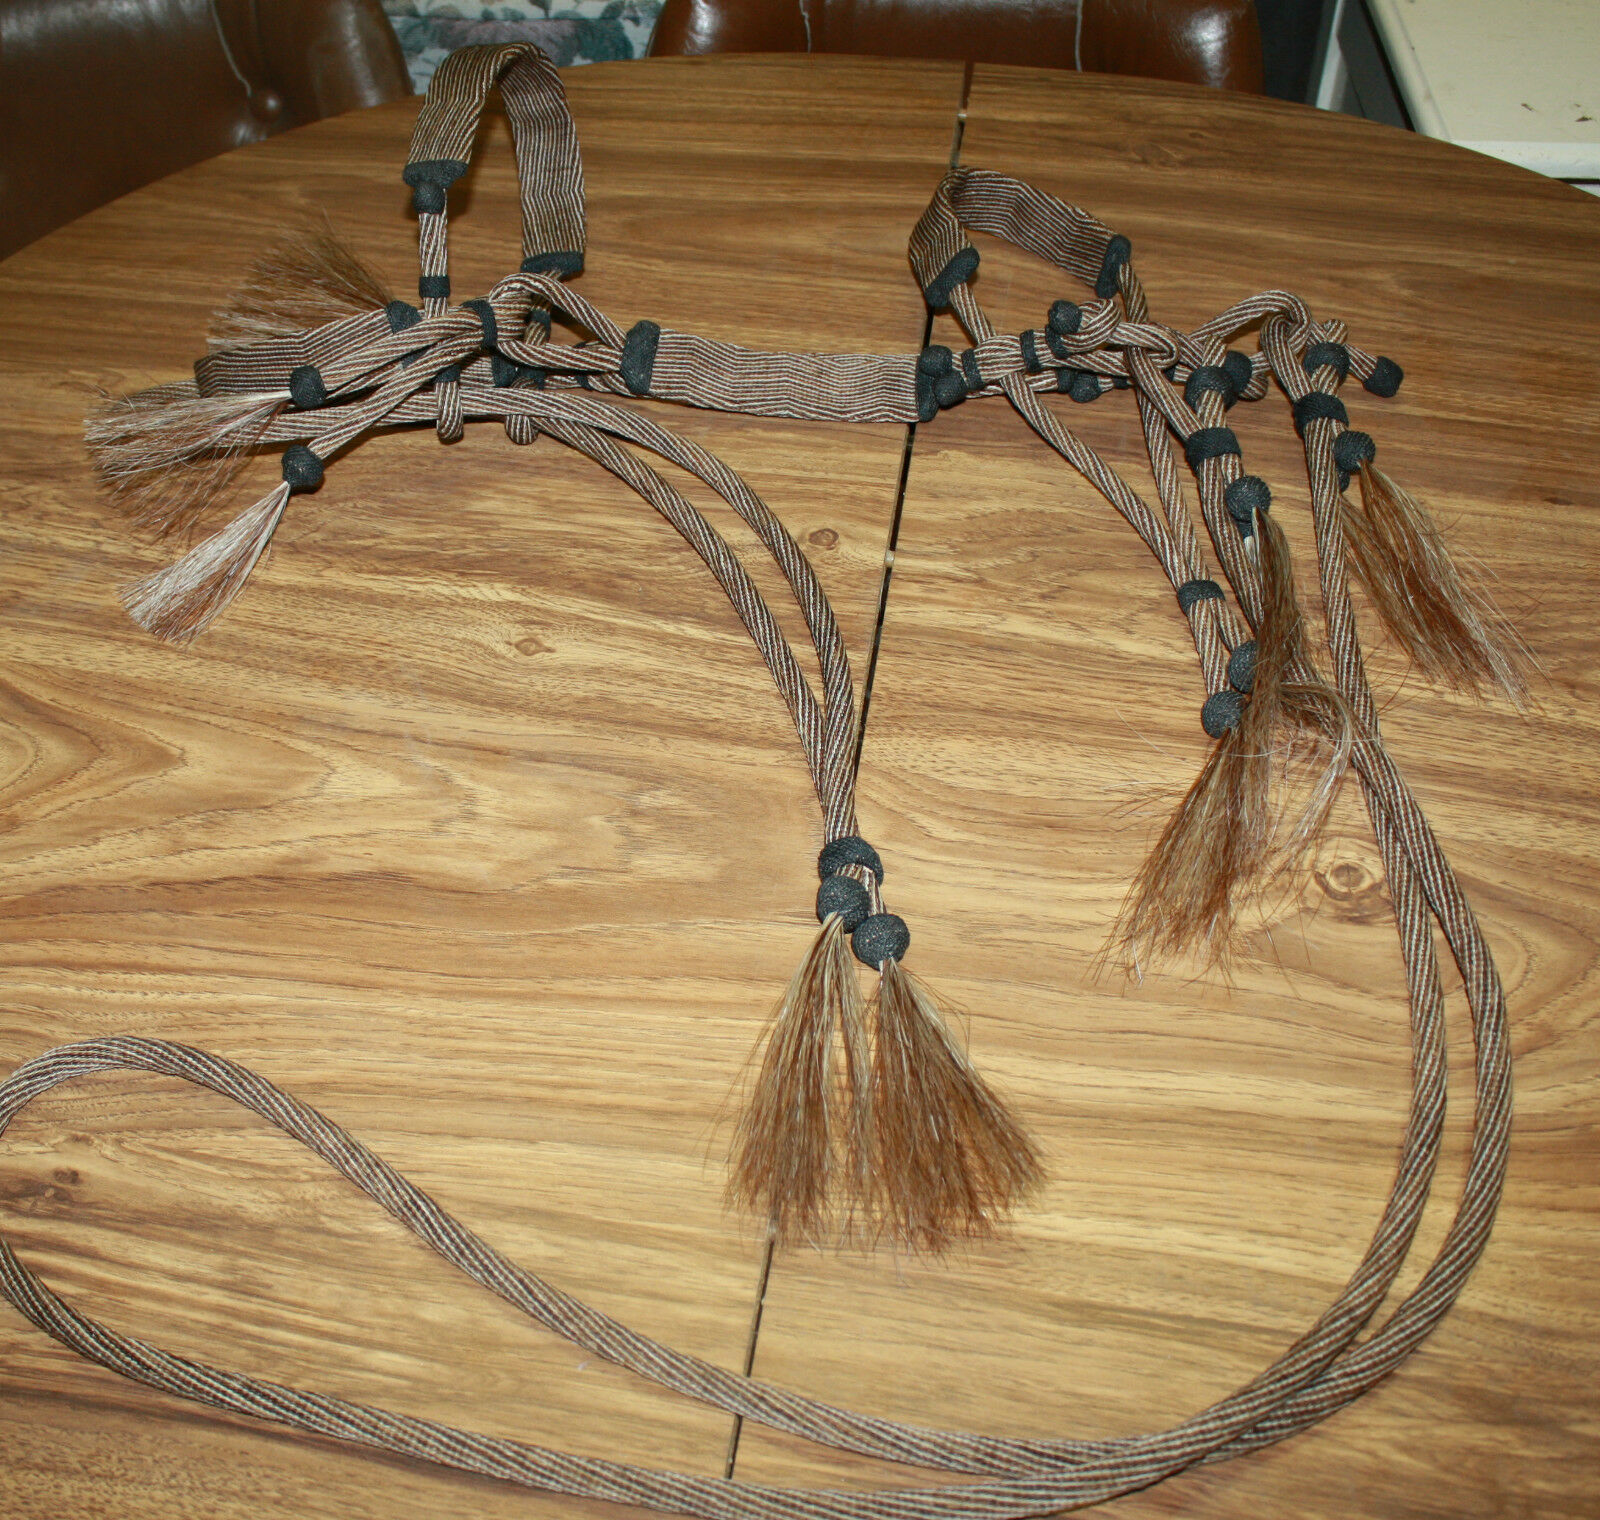 MONTANA STATE PRISON MADE HITCHED HORSE HAIR BRIDLE HEADSTALL NEW